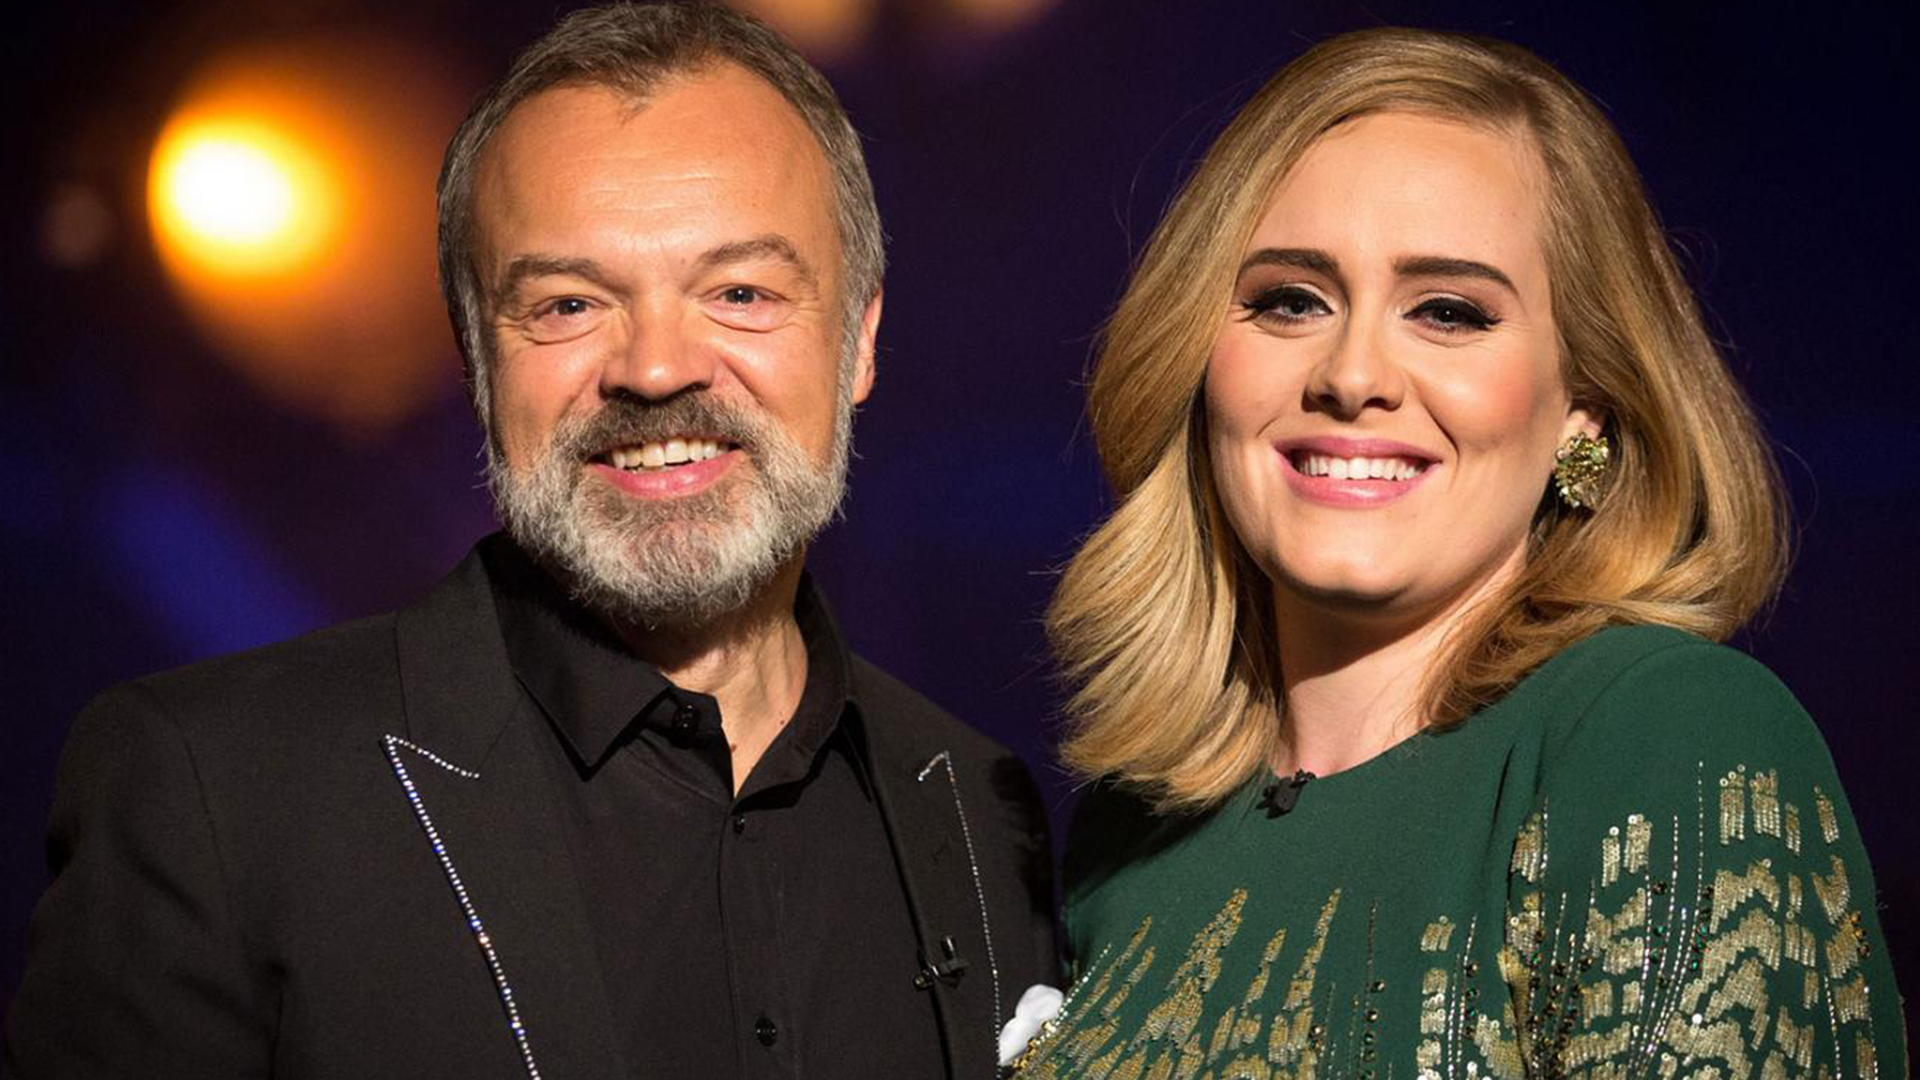 BRILLIANT: ADELE IMPERSONATES HERSELF & PRANKS OTHER IMPERSONATORS ON GRAHAM NORTON!